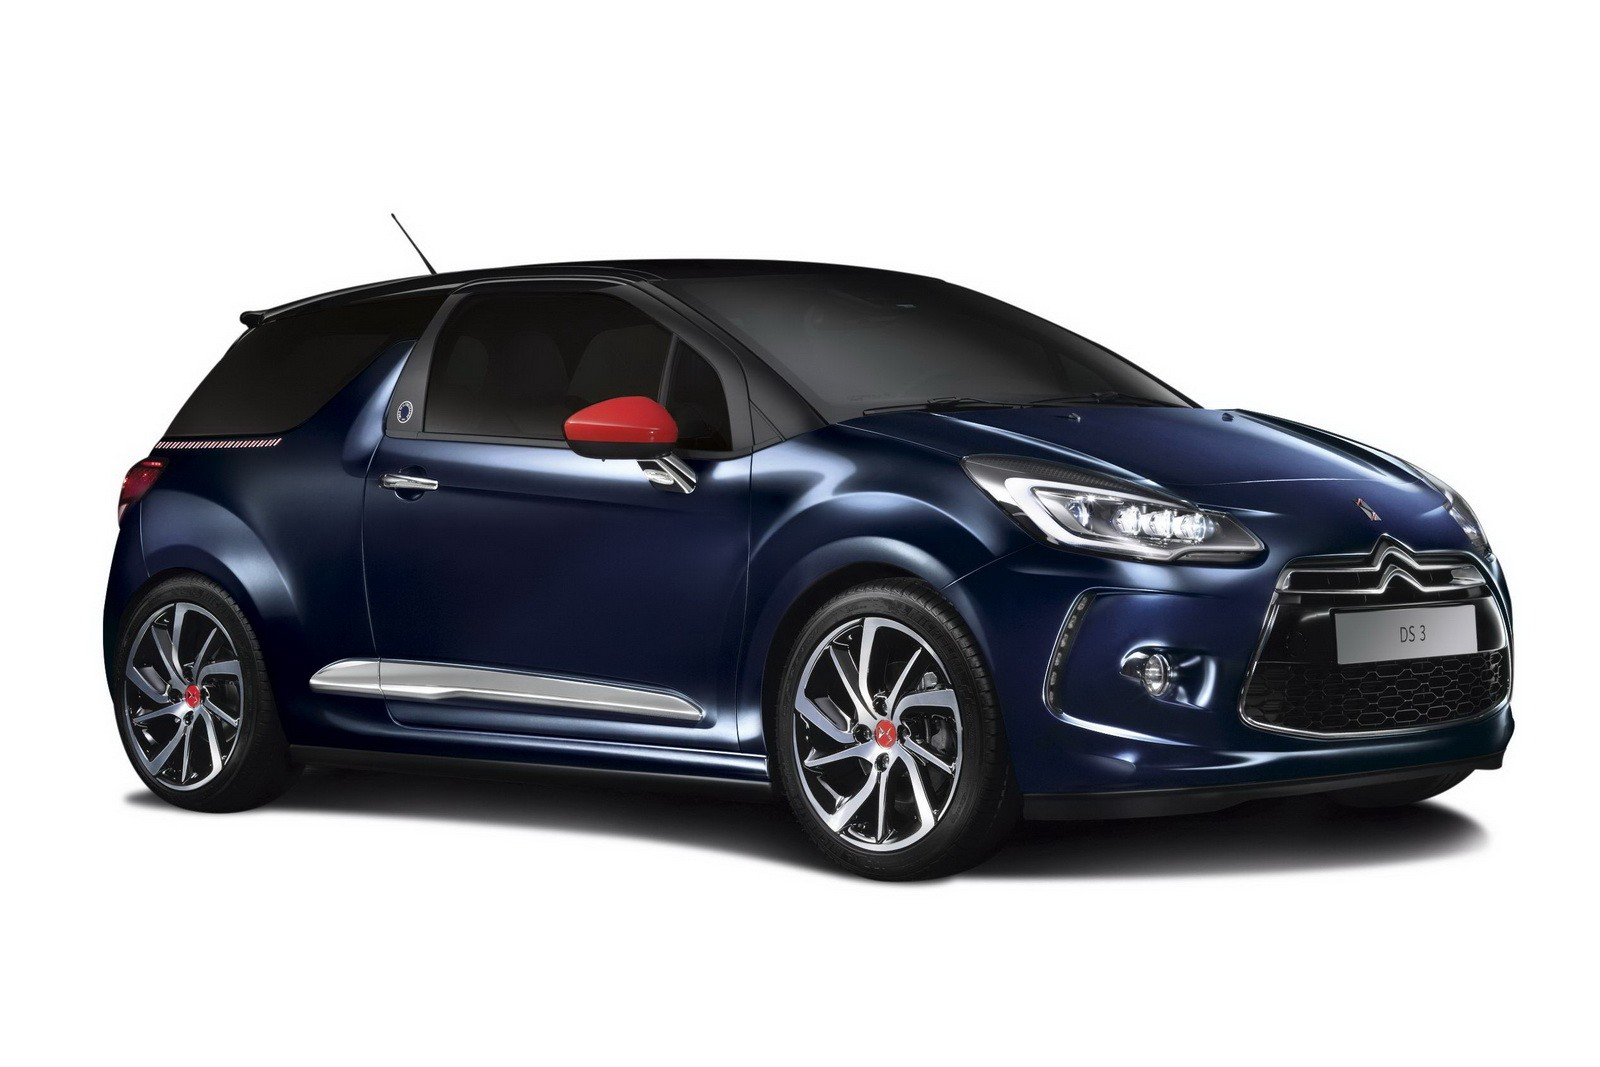 ds 3 ines de la fressange paris is the first car from the ds standalone brand autoevolution. Black Bedroom Furniture Sets. Home Design Ideas